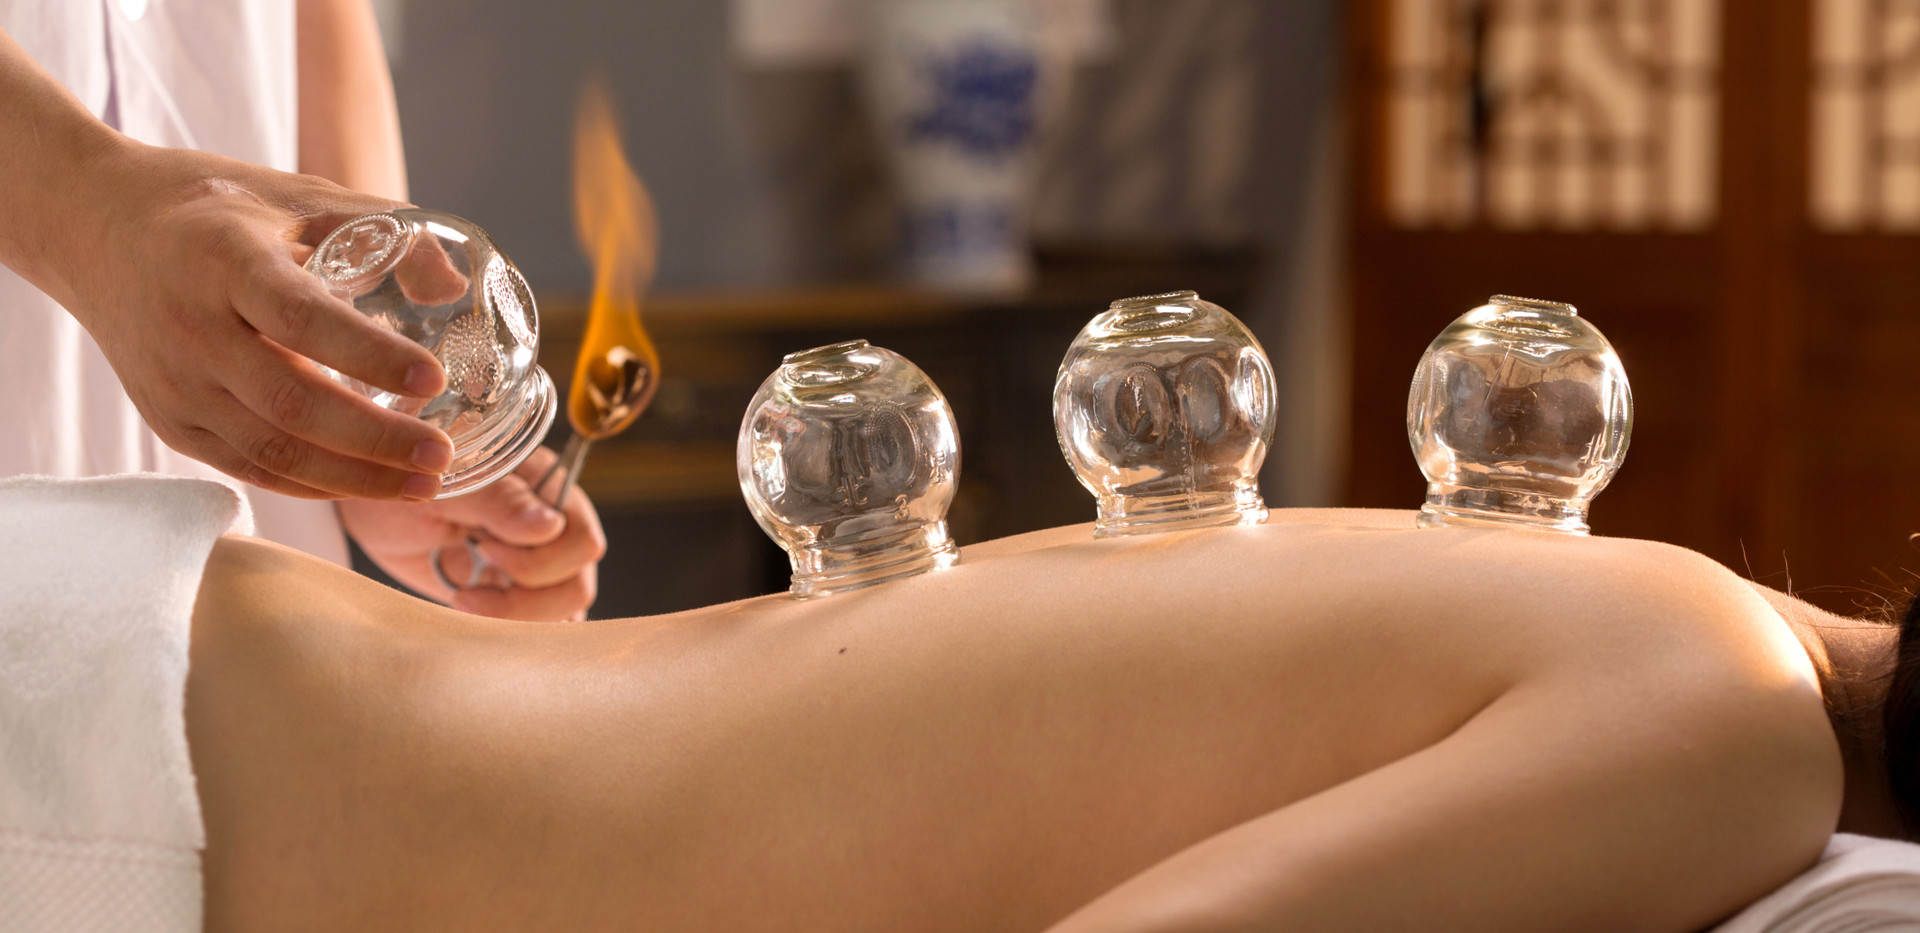 Ayurveda cupping technique